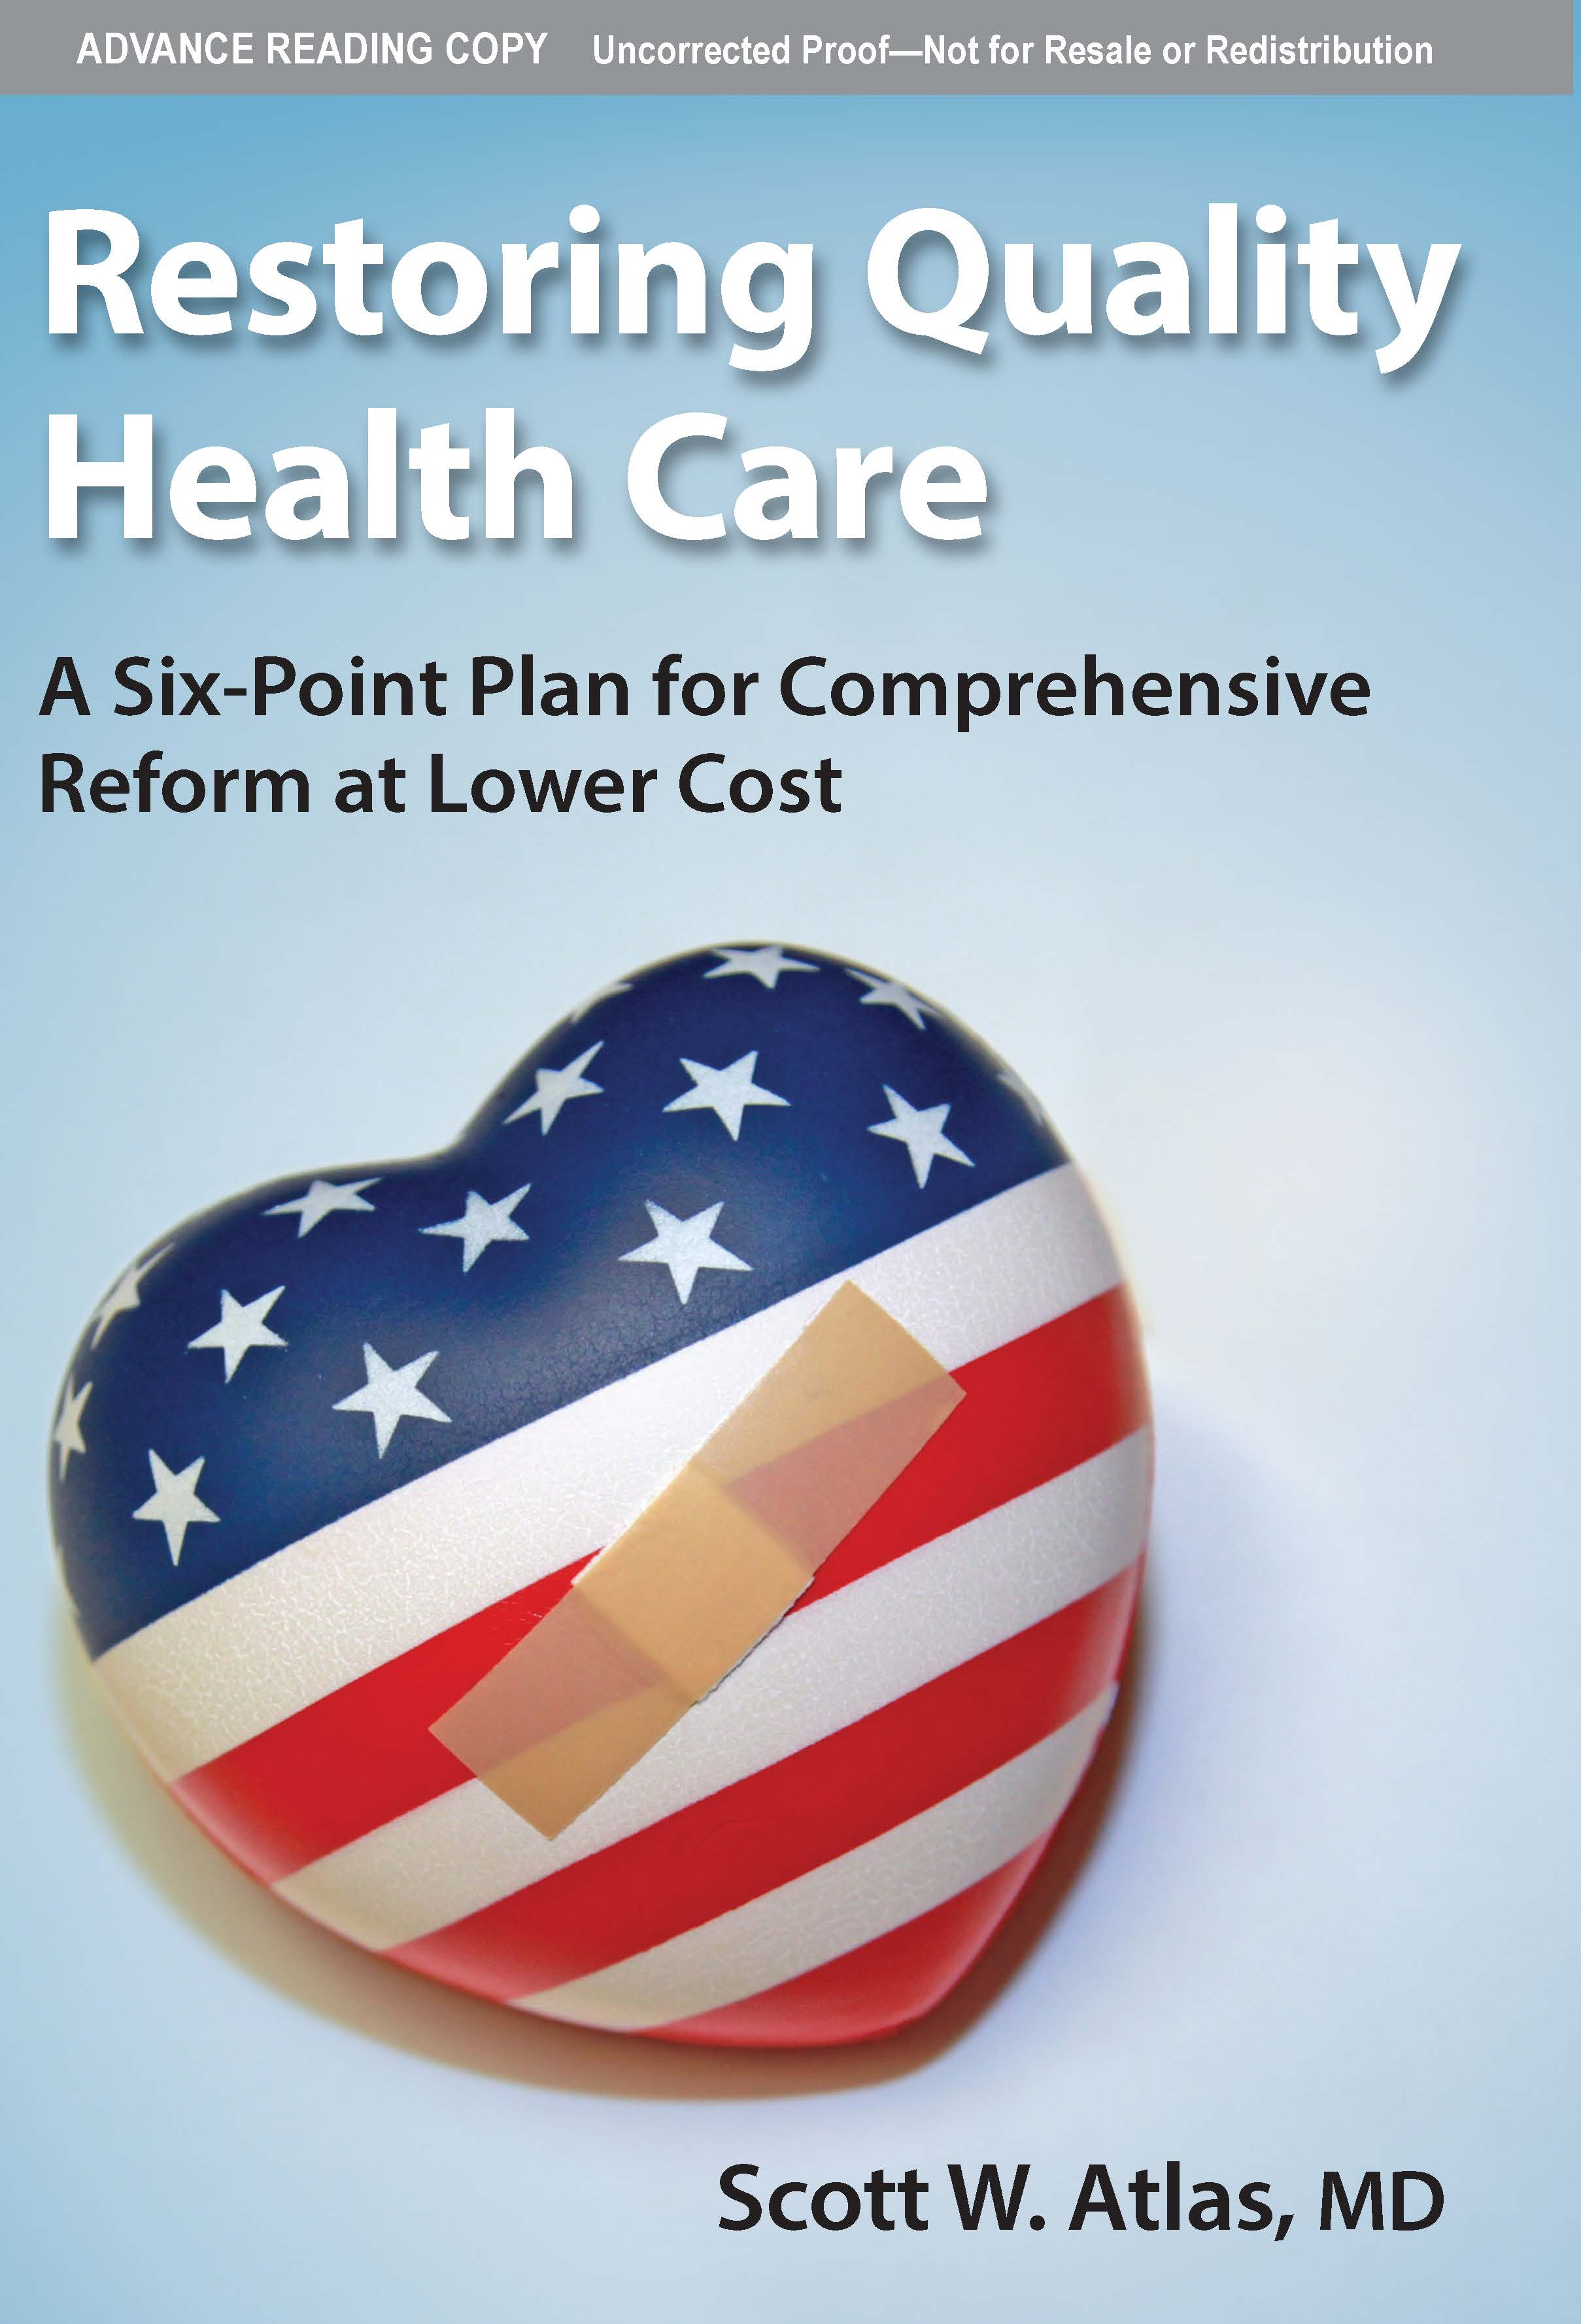 restoring quality health care  hoover institution